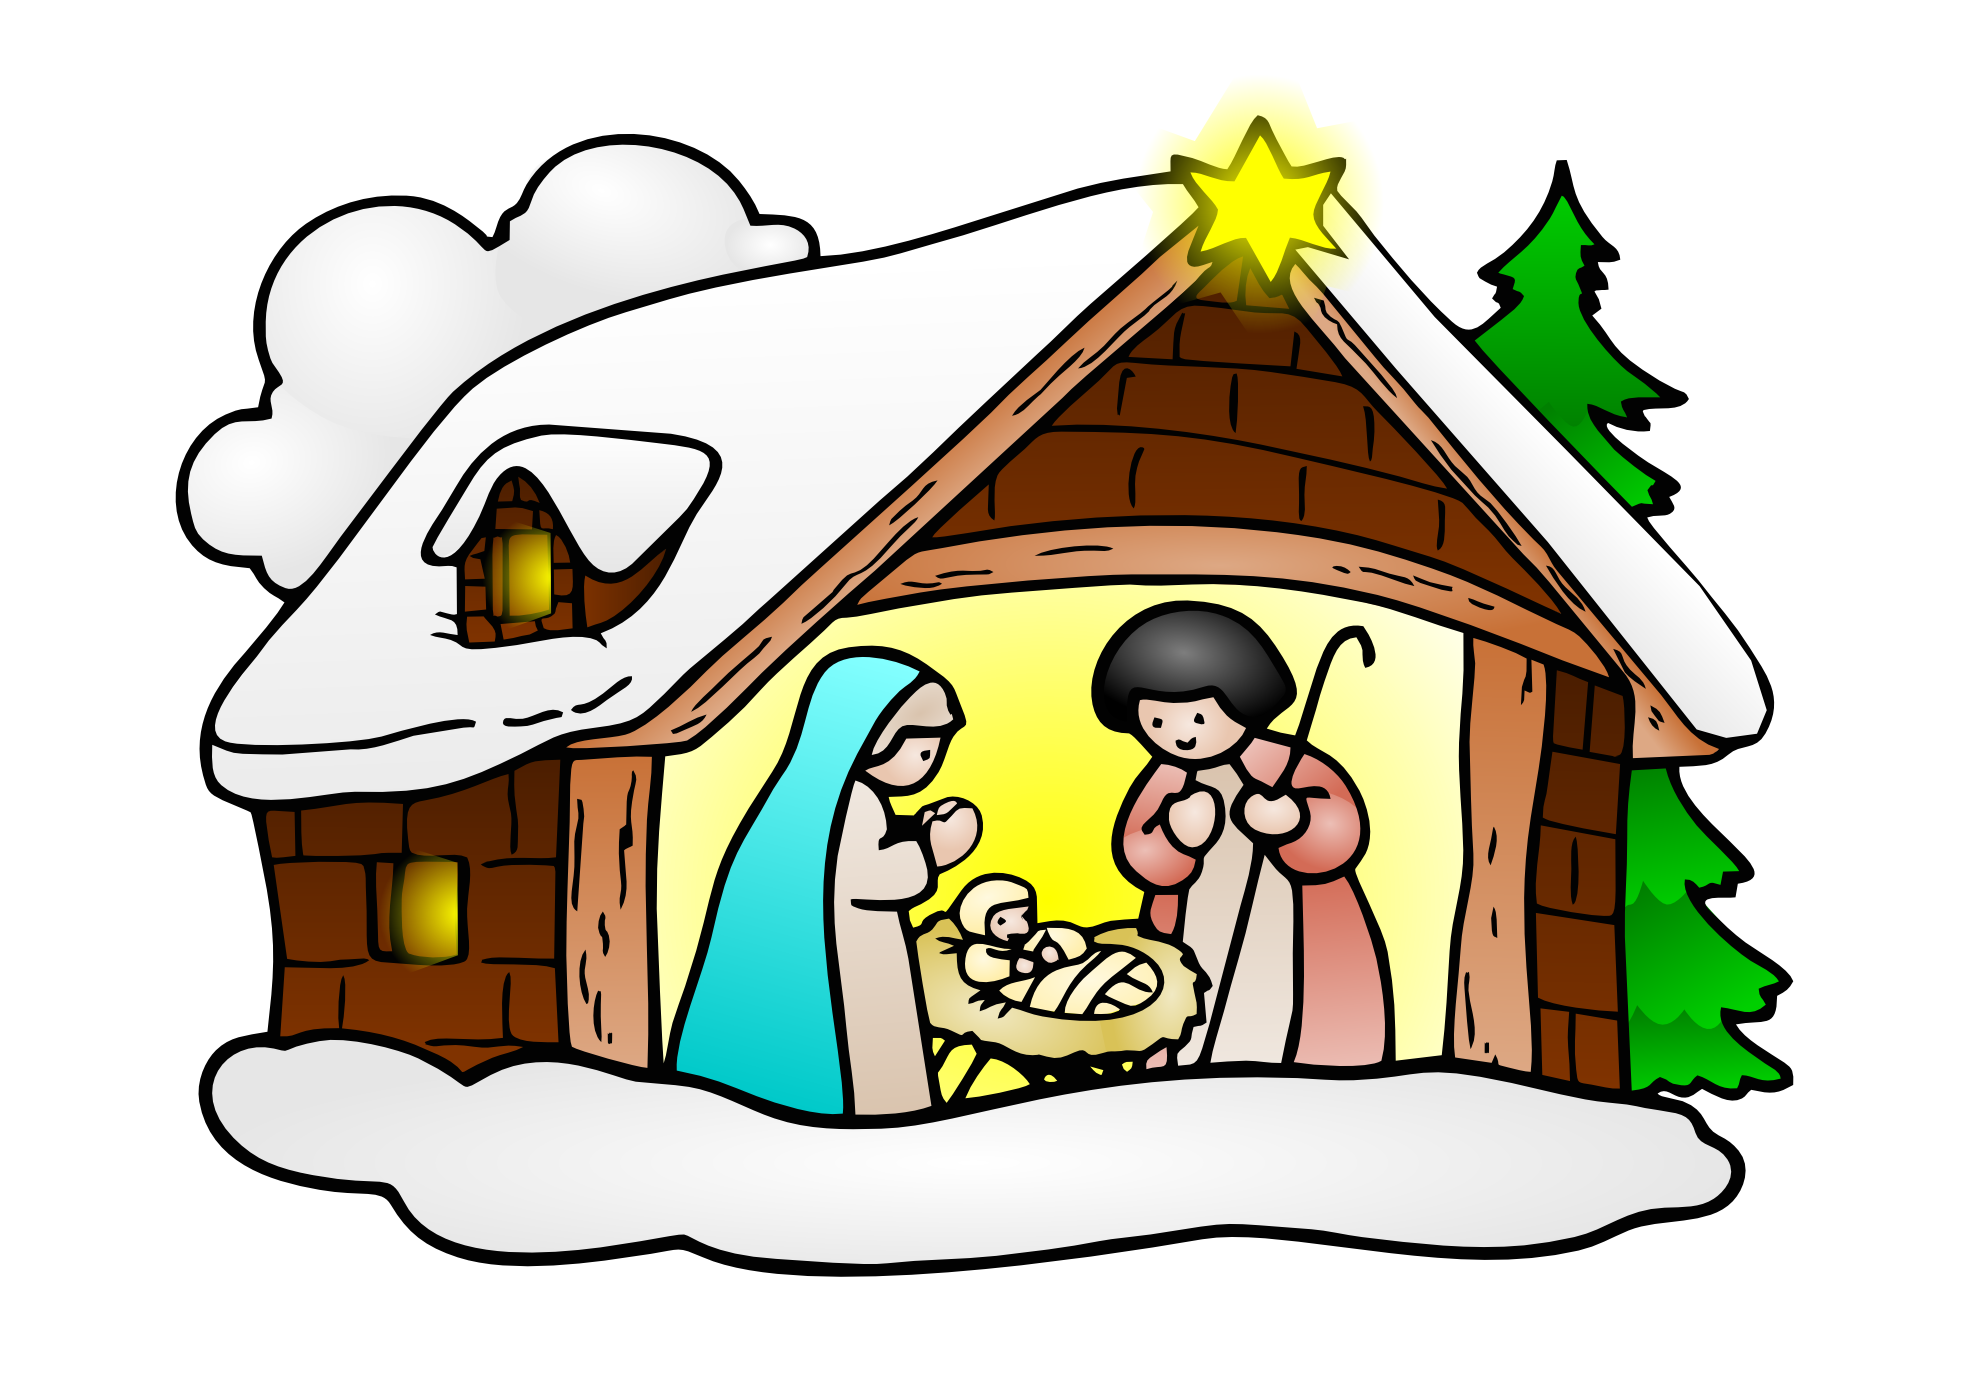 Clipart friends house graphic royalty free library Cute jesus clipart clipart - ClipartFest graphic royalty free library